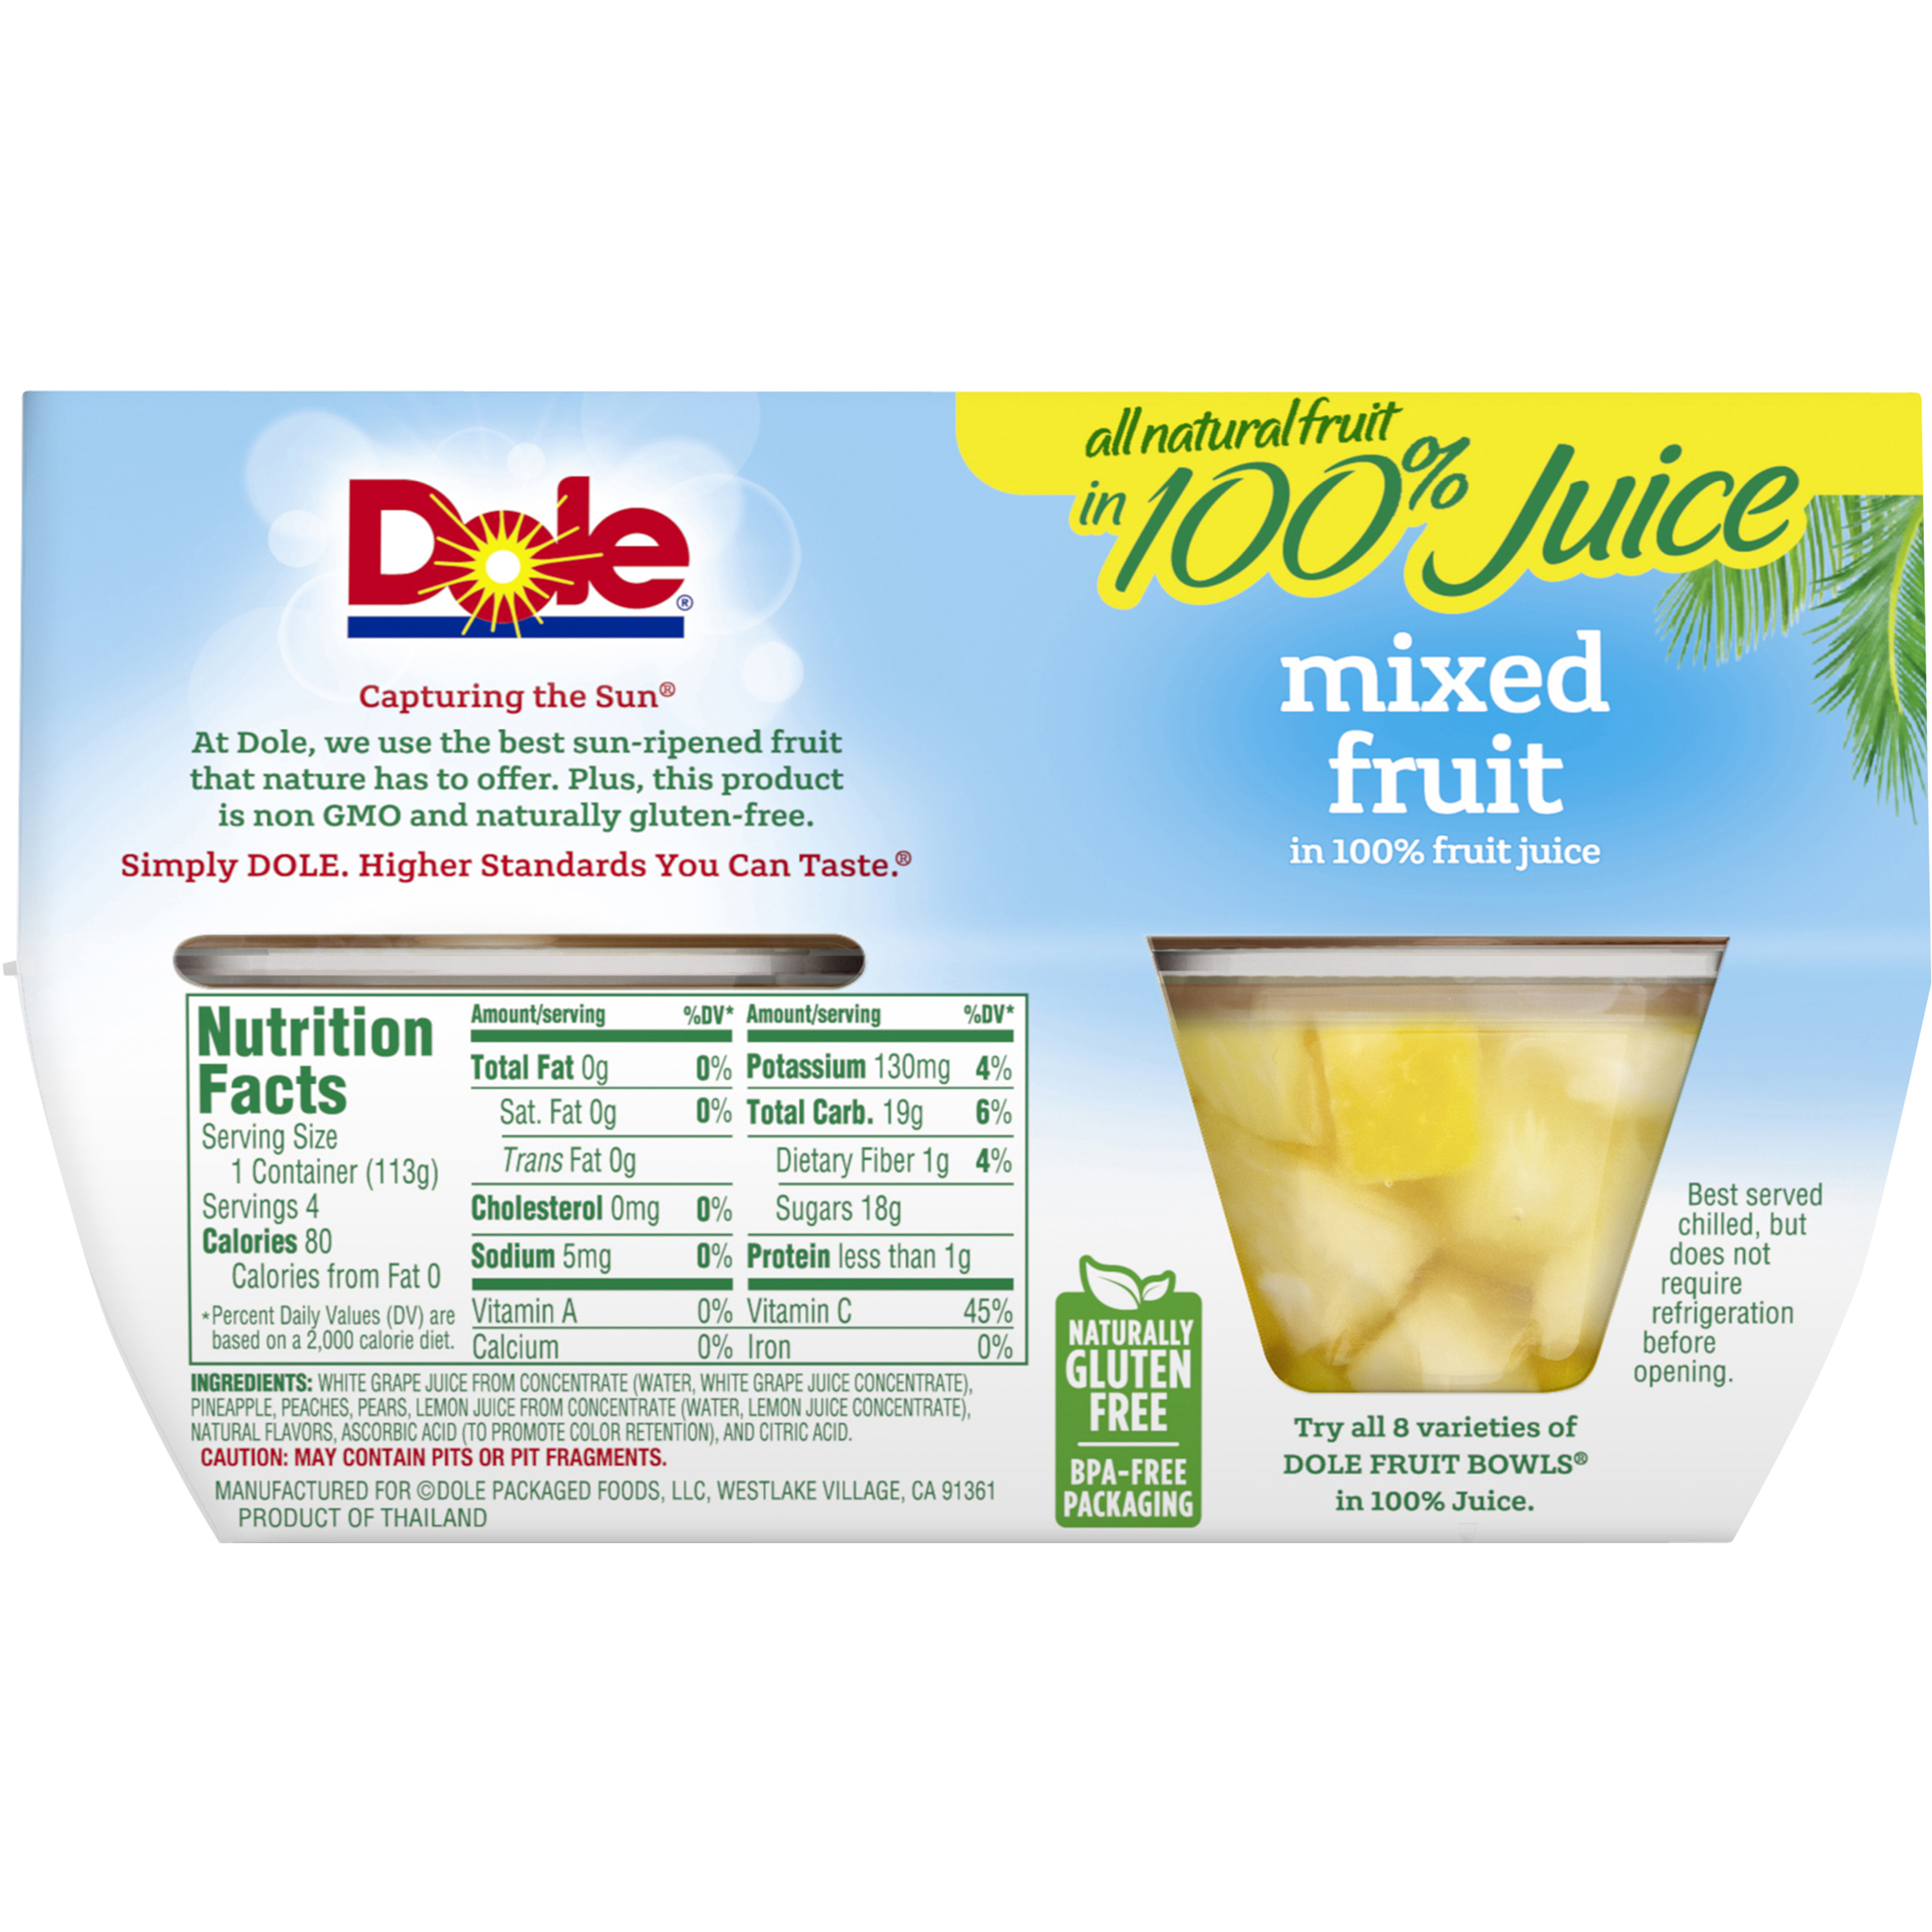 Dole Fruit Bowls Mixed Fruit in 100